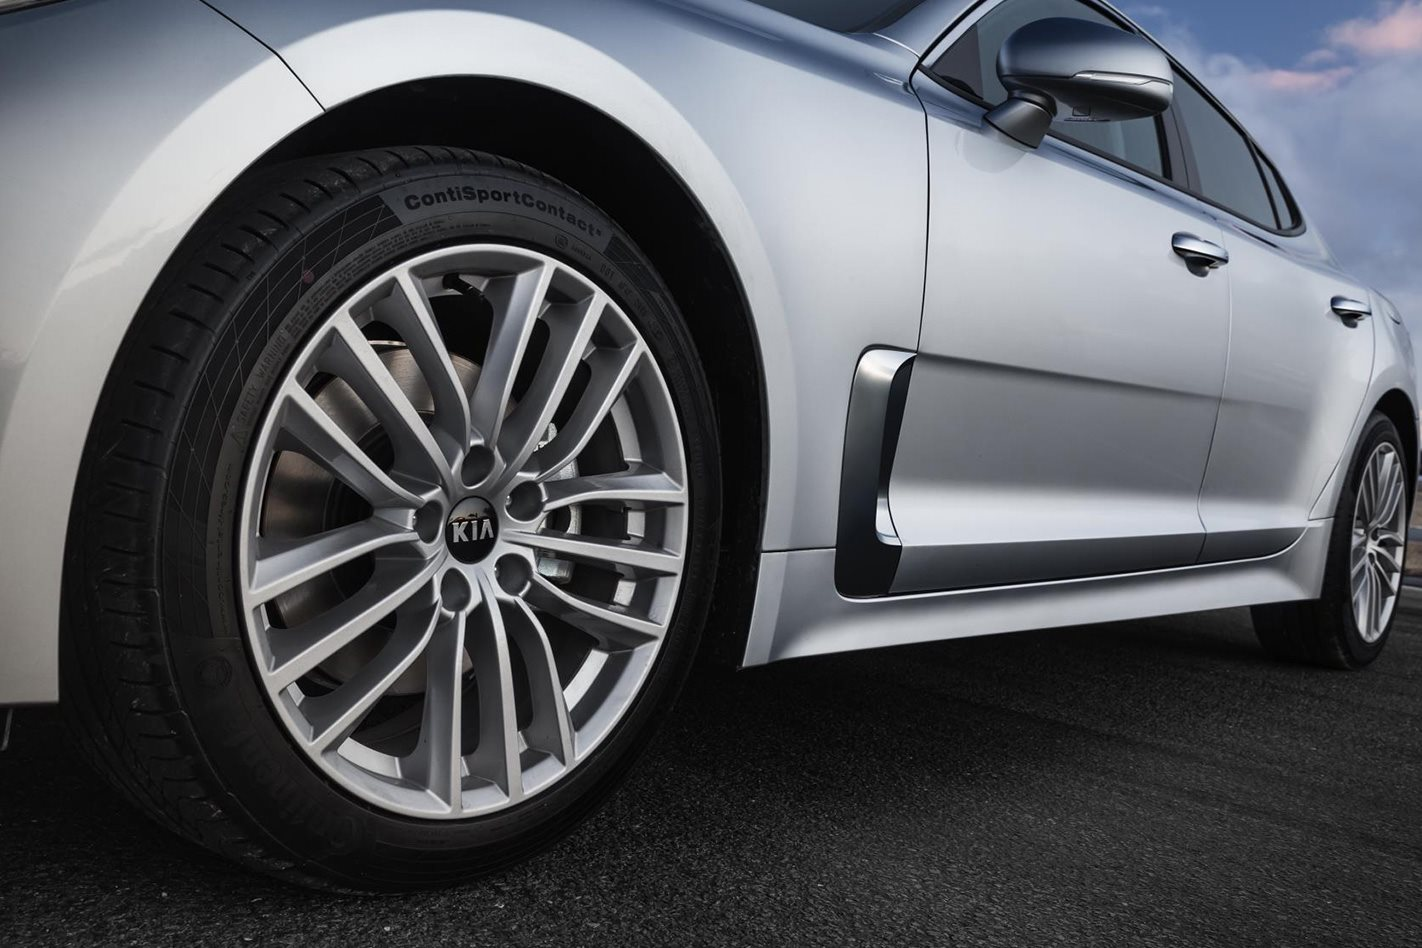 Kia-Stinger-2.0-litre wheel